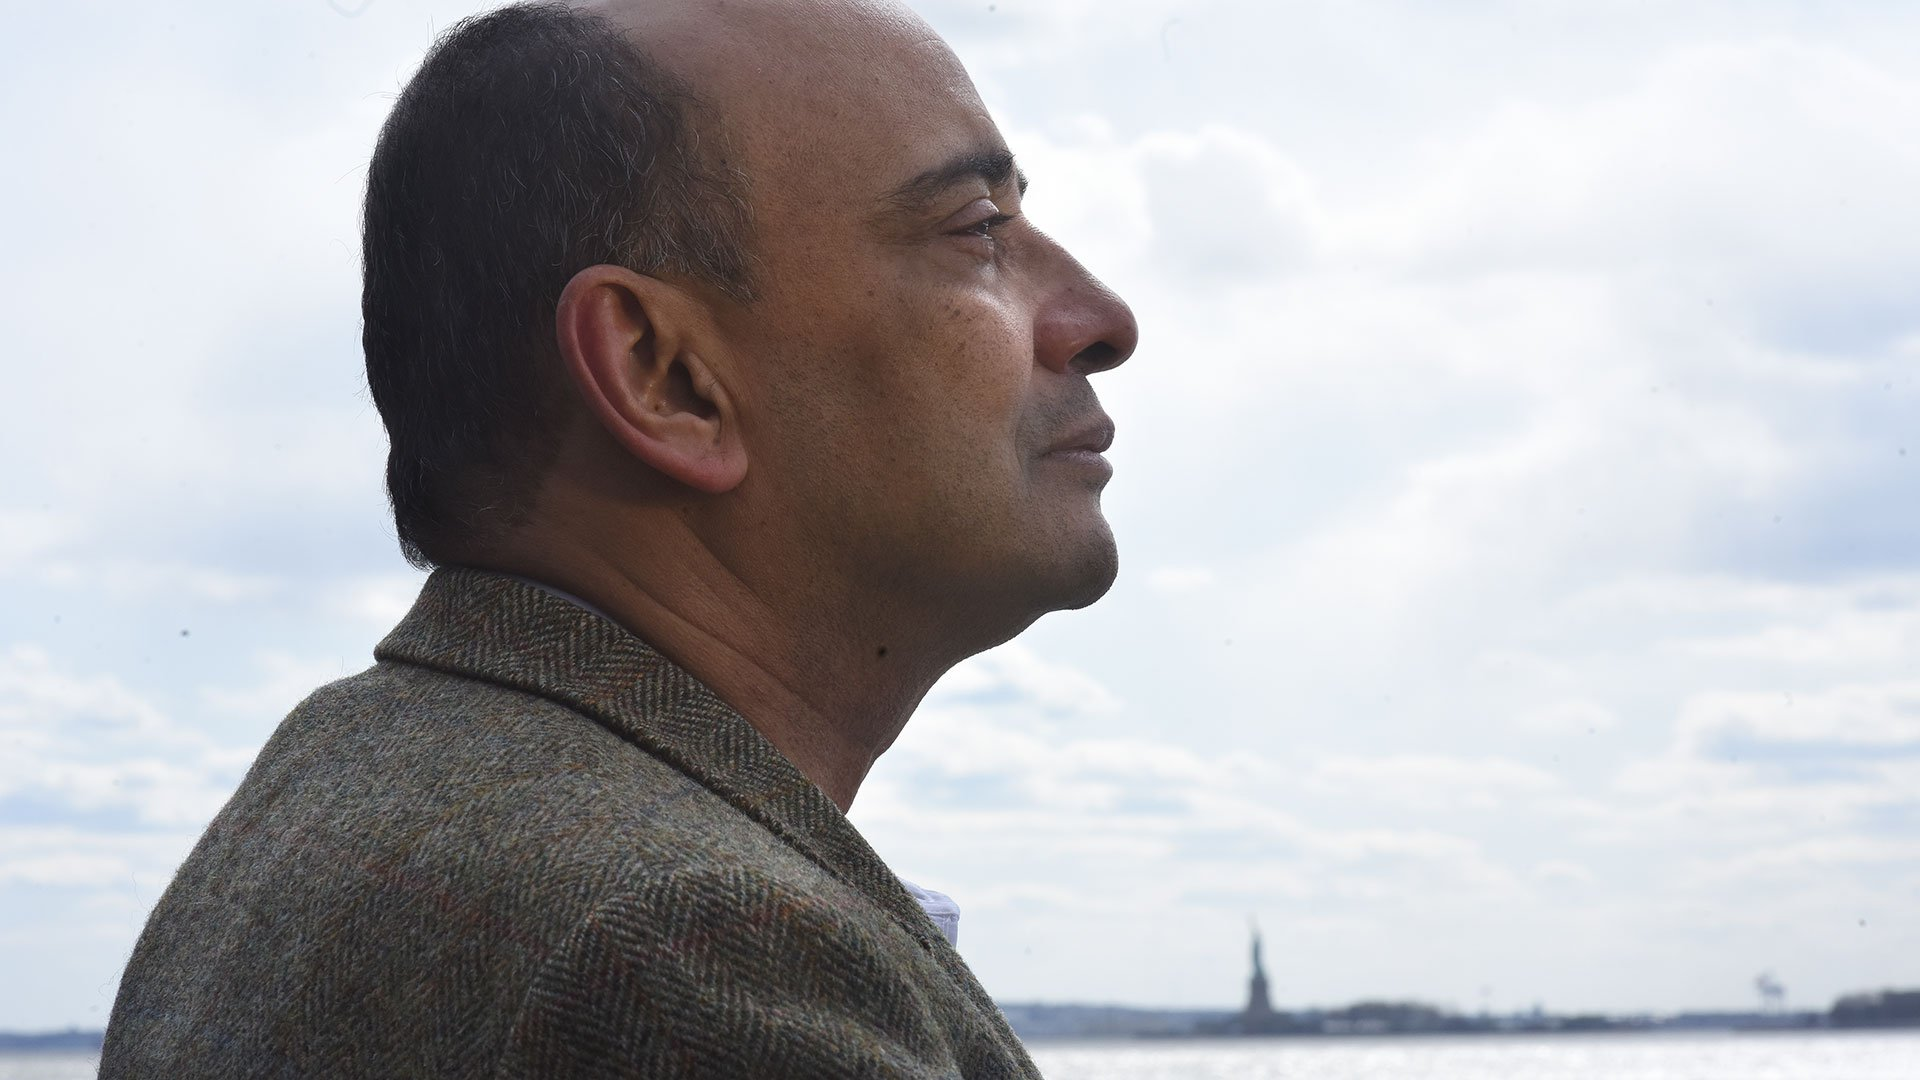 Kwame Anthony Appiah outside in New York City